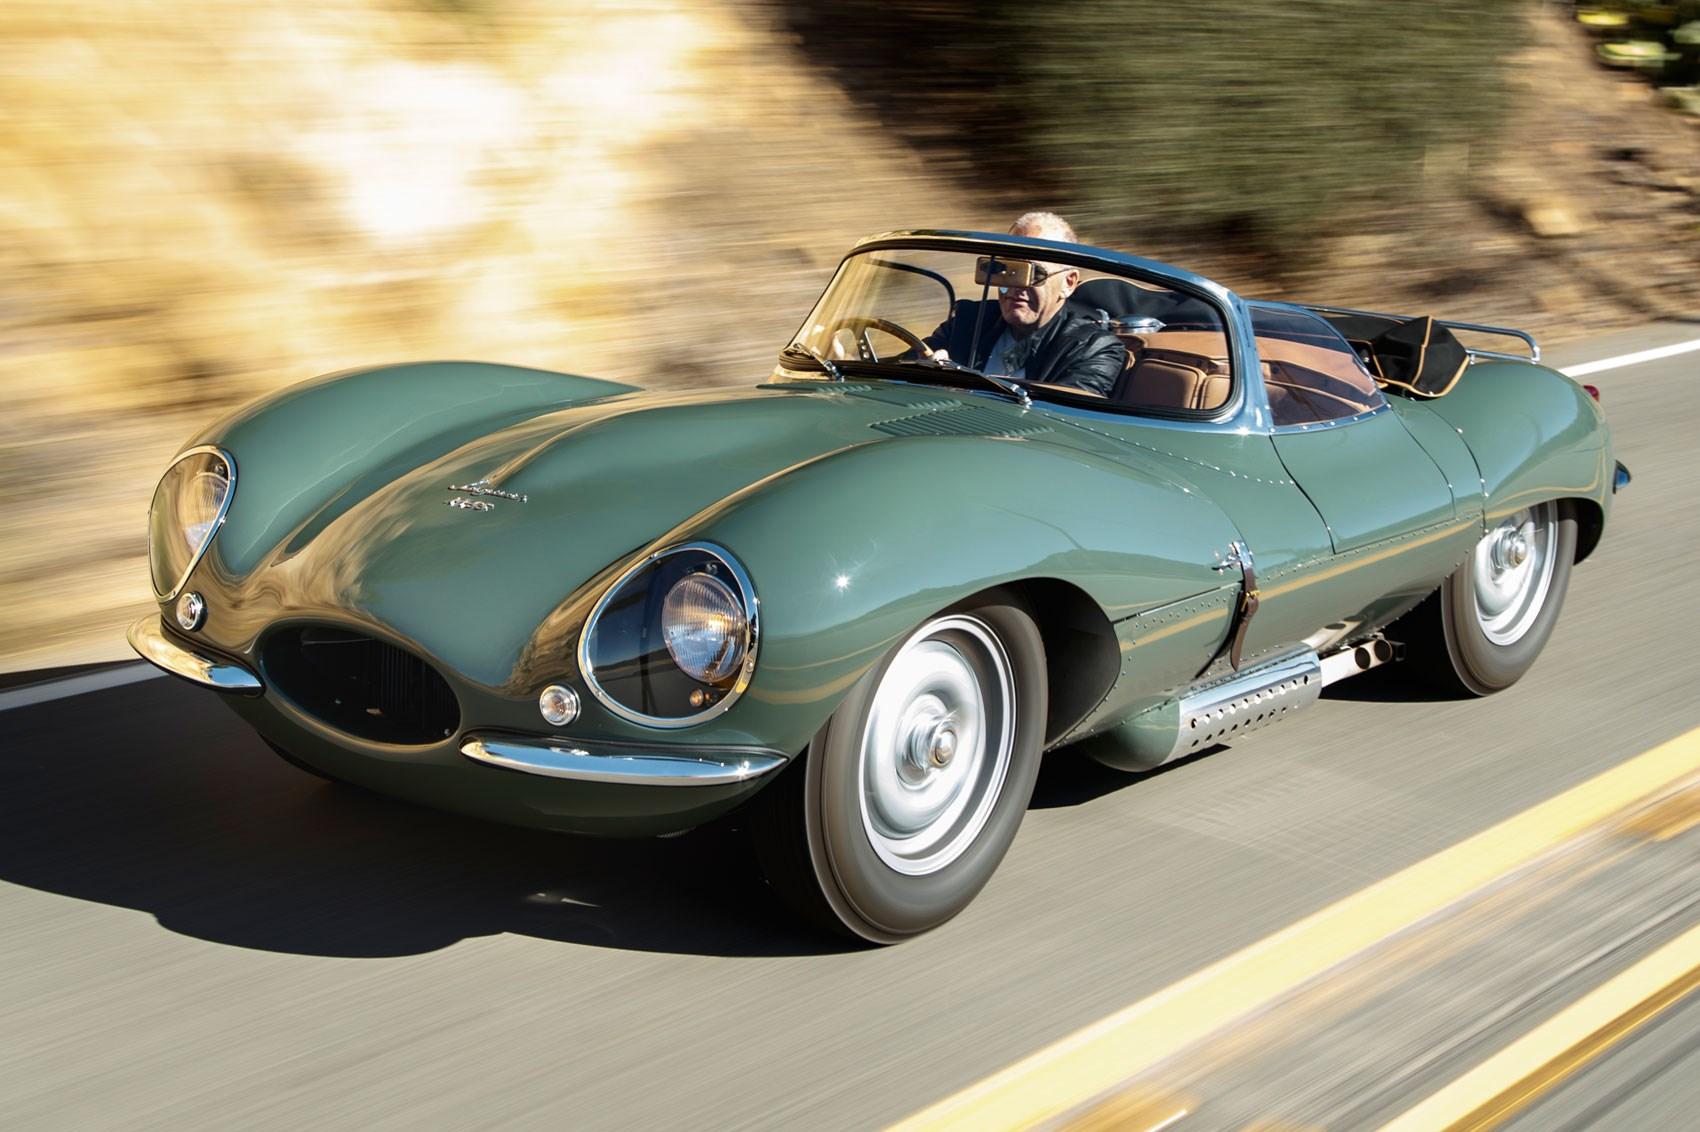 An Original Jaguar XKSS, One Of Only 16 Ever Built.